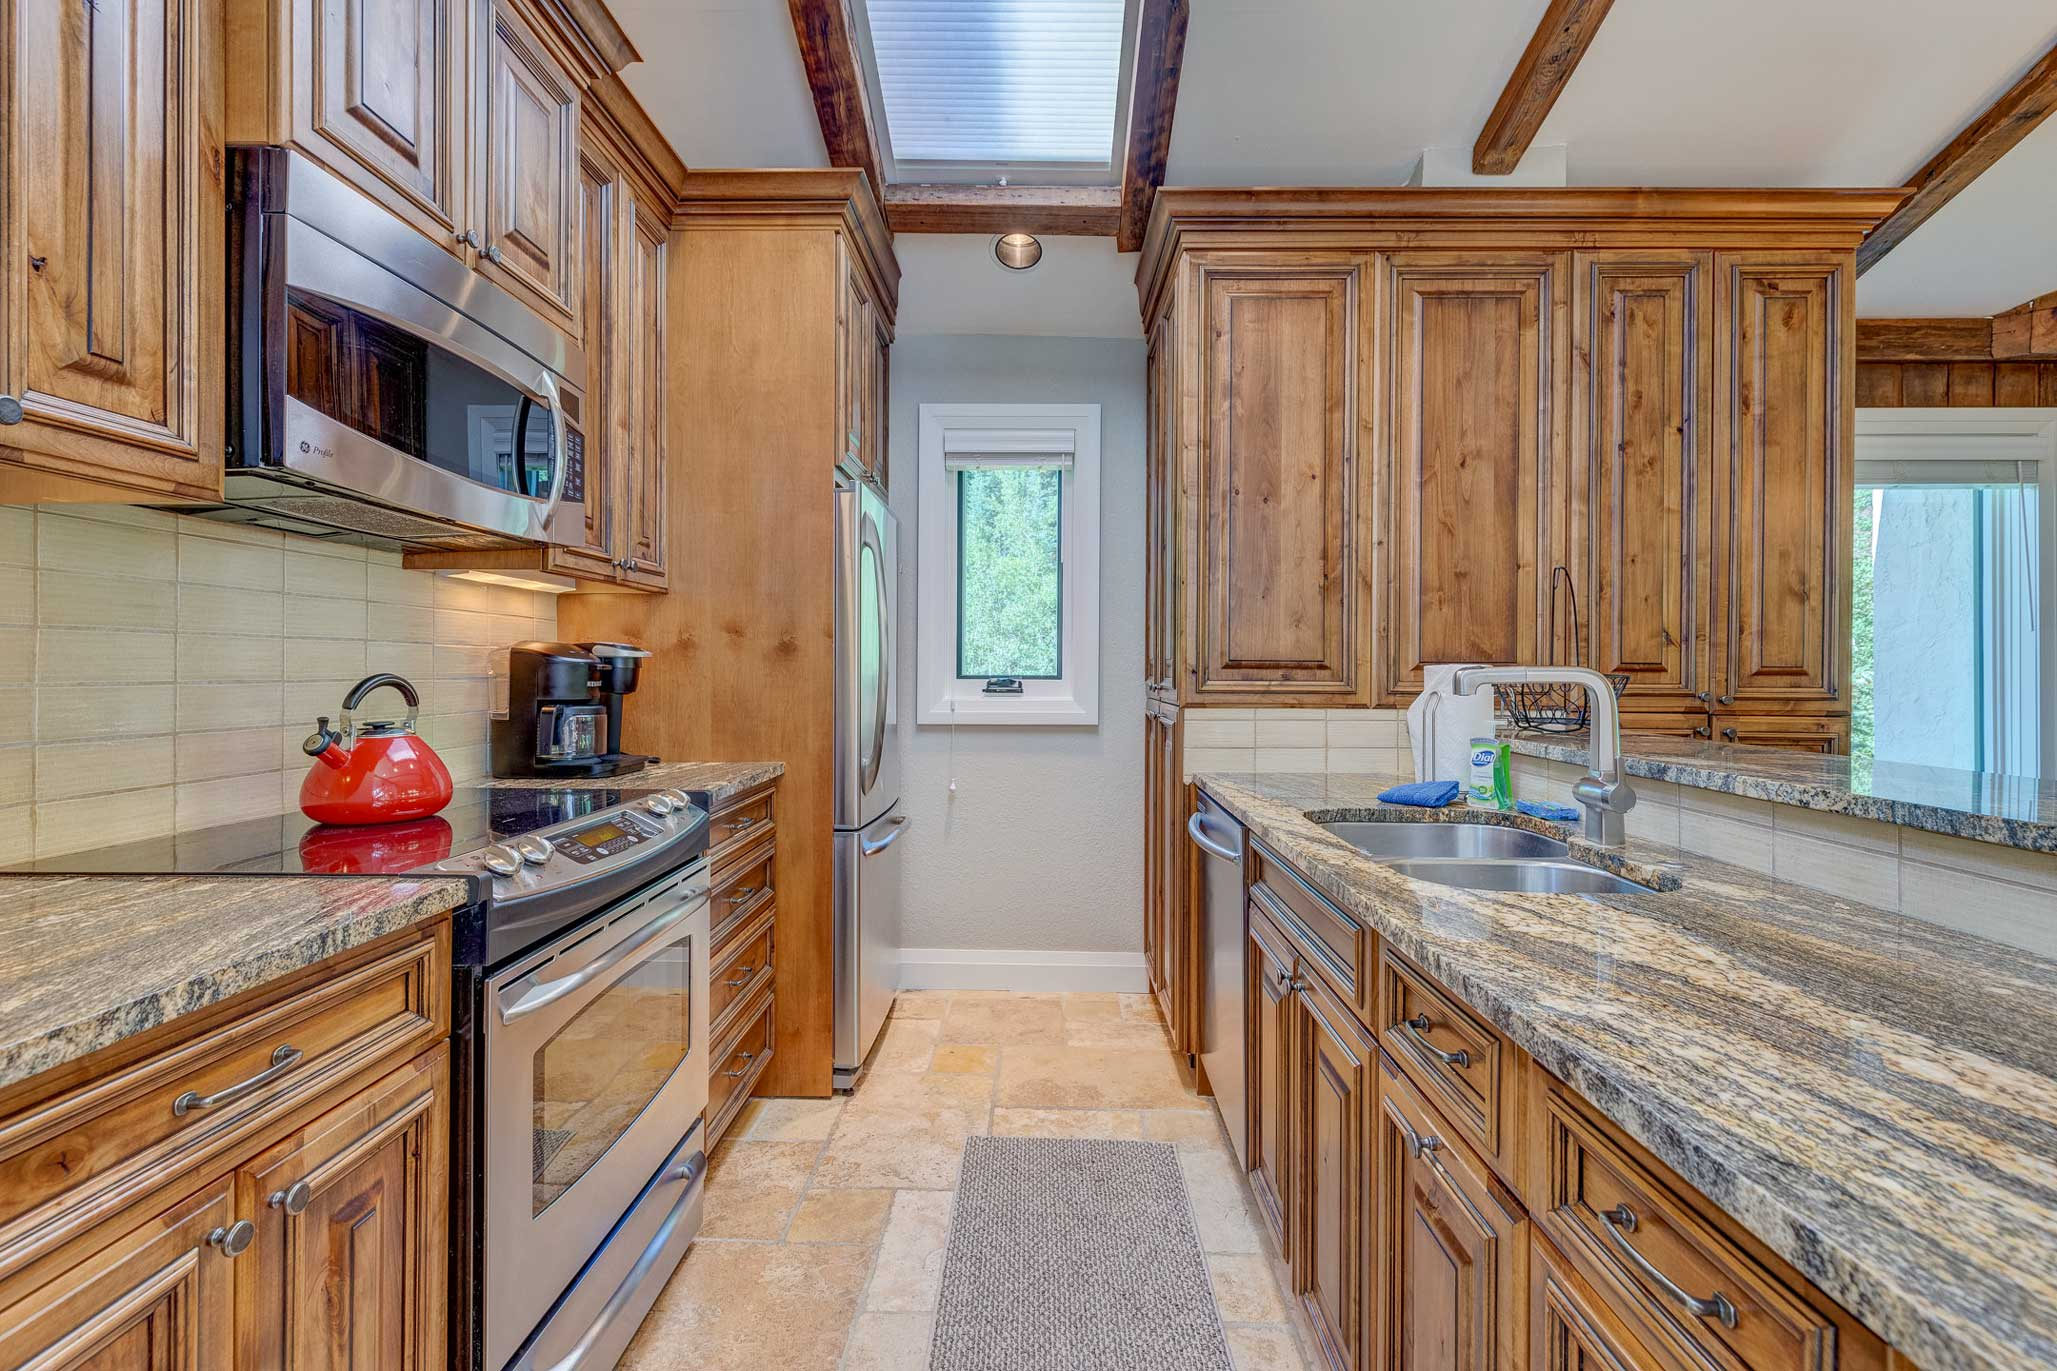 The kitchen boasts stainless steel appliances and Alder cabinetry.